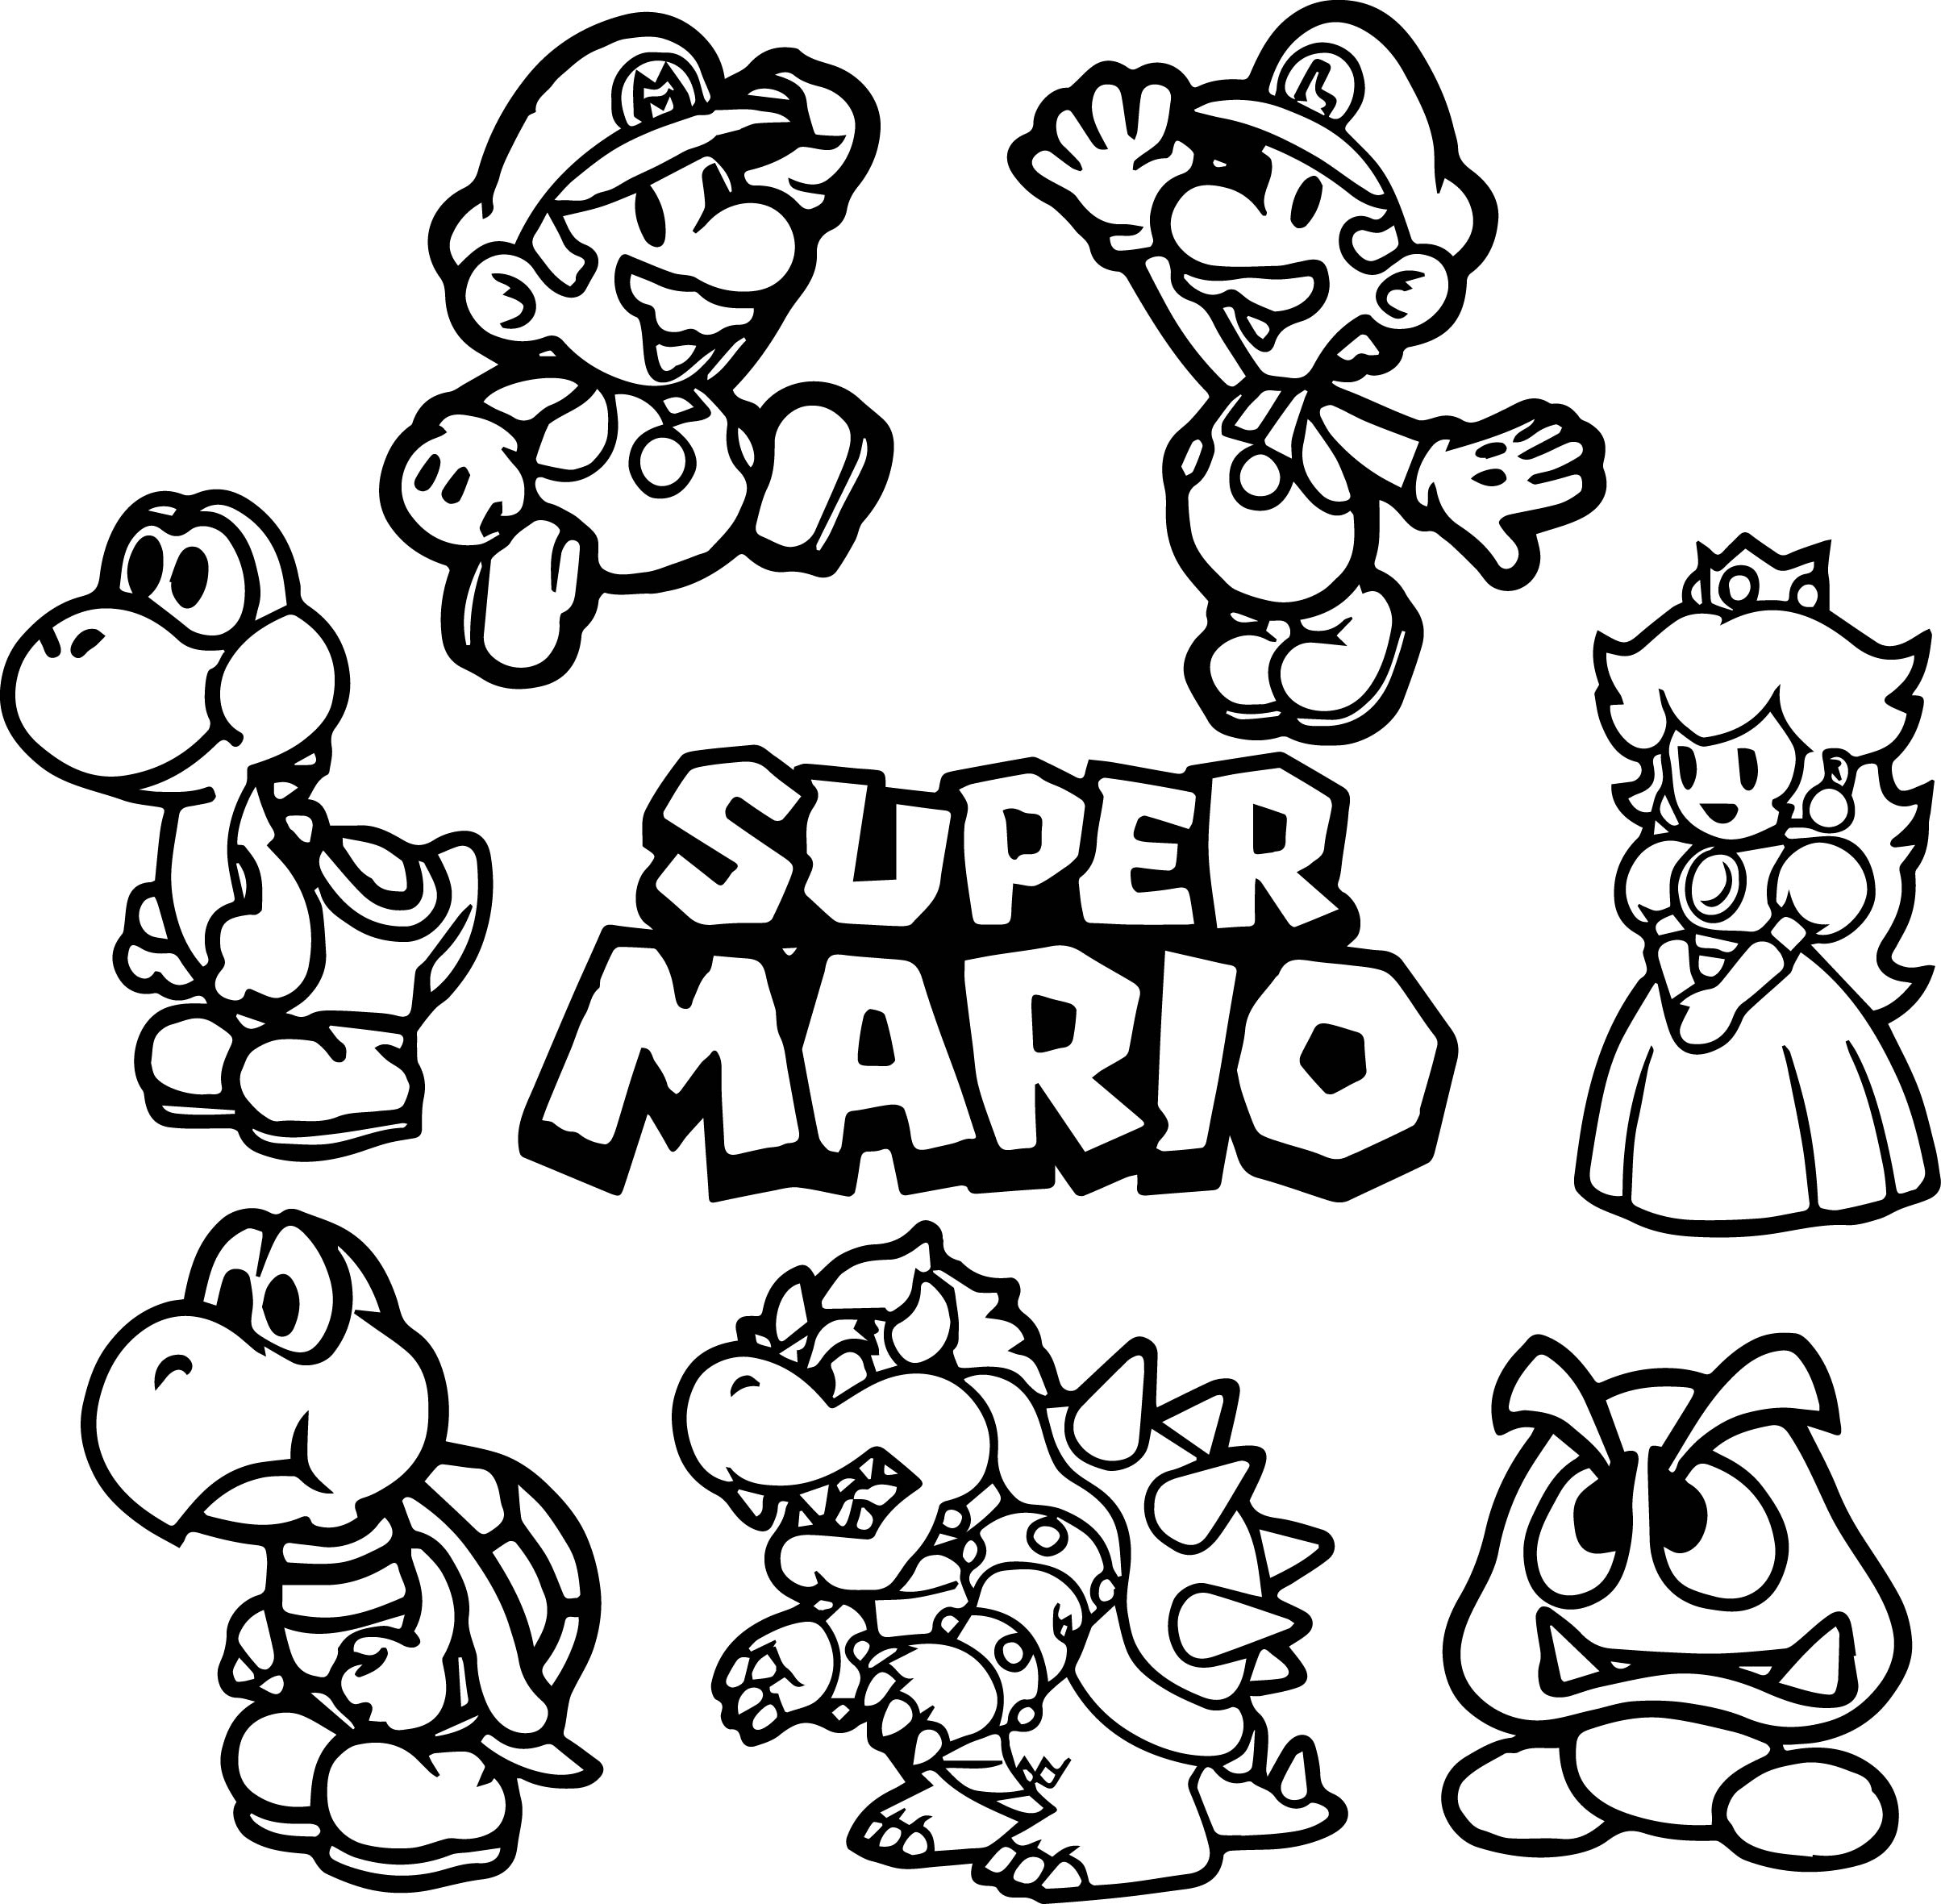 Koopalings Coloring Pages At Getdrawings Com Free For Personal Use